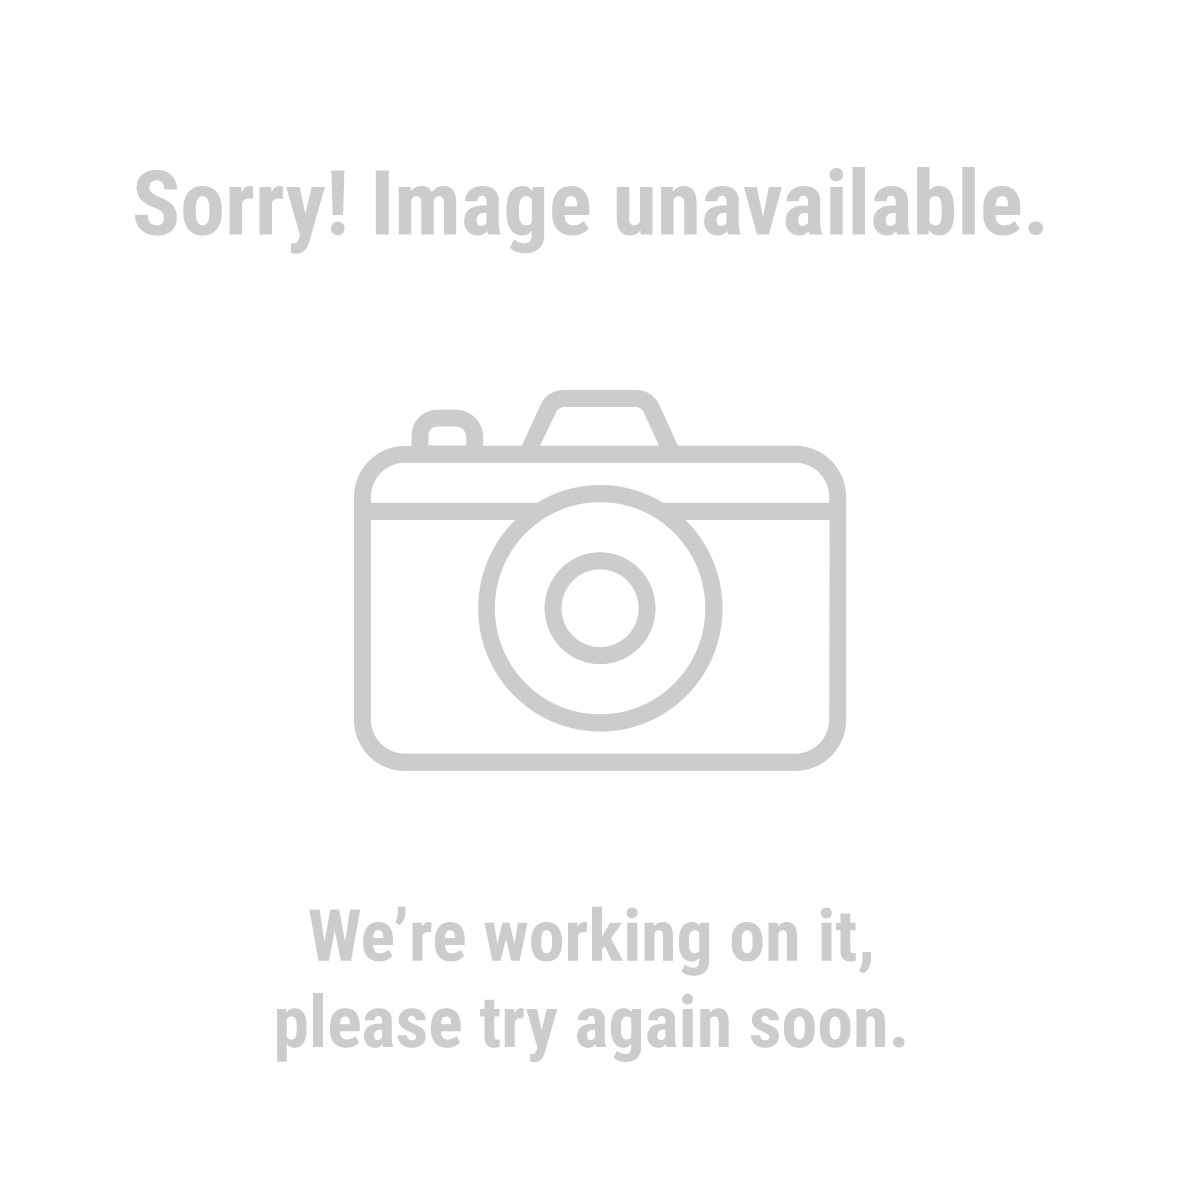 "Gordon 94524 12"", 15 LED Flashlight"